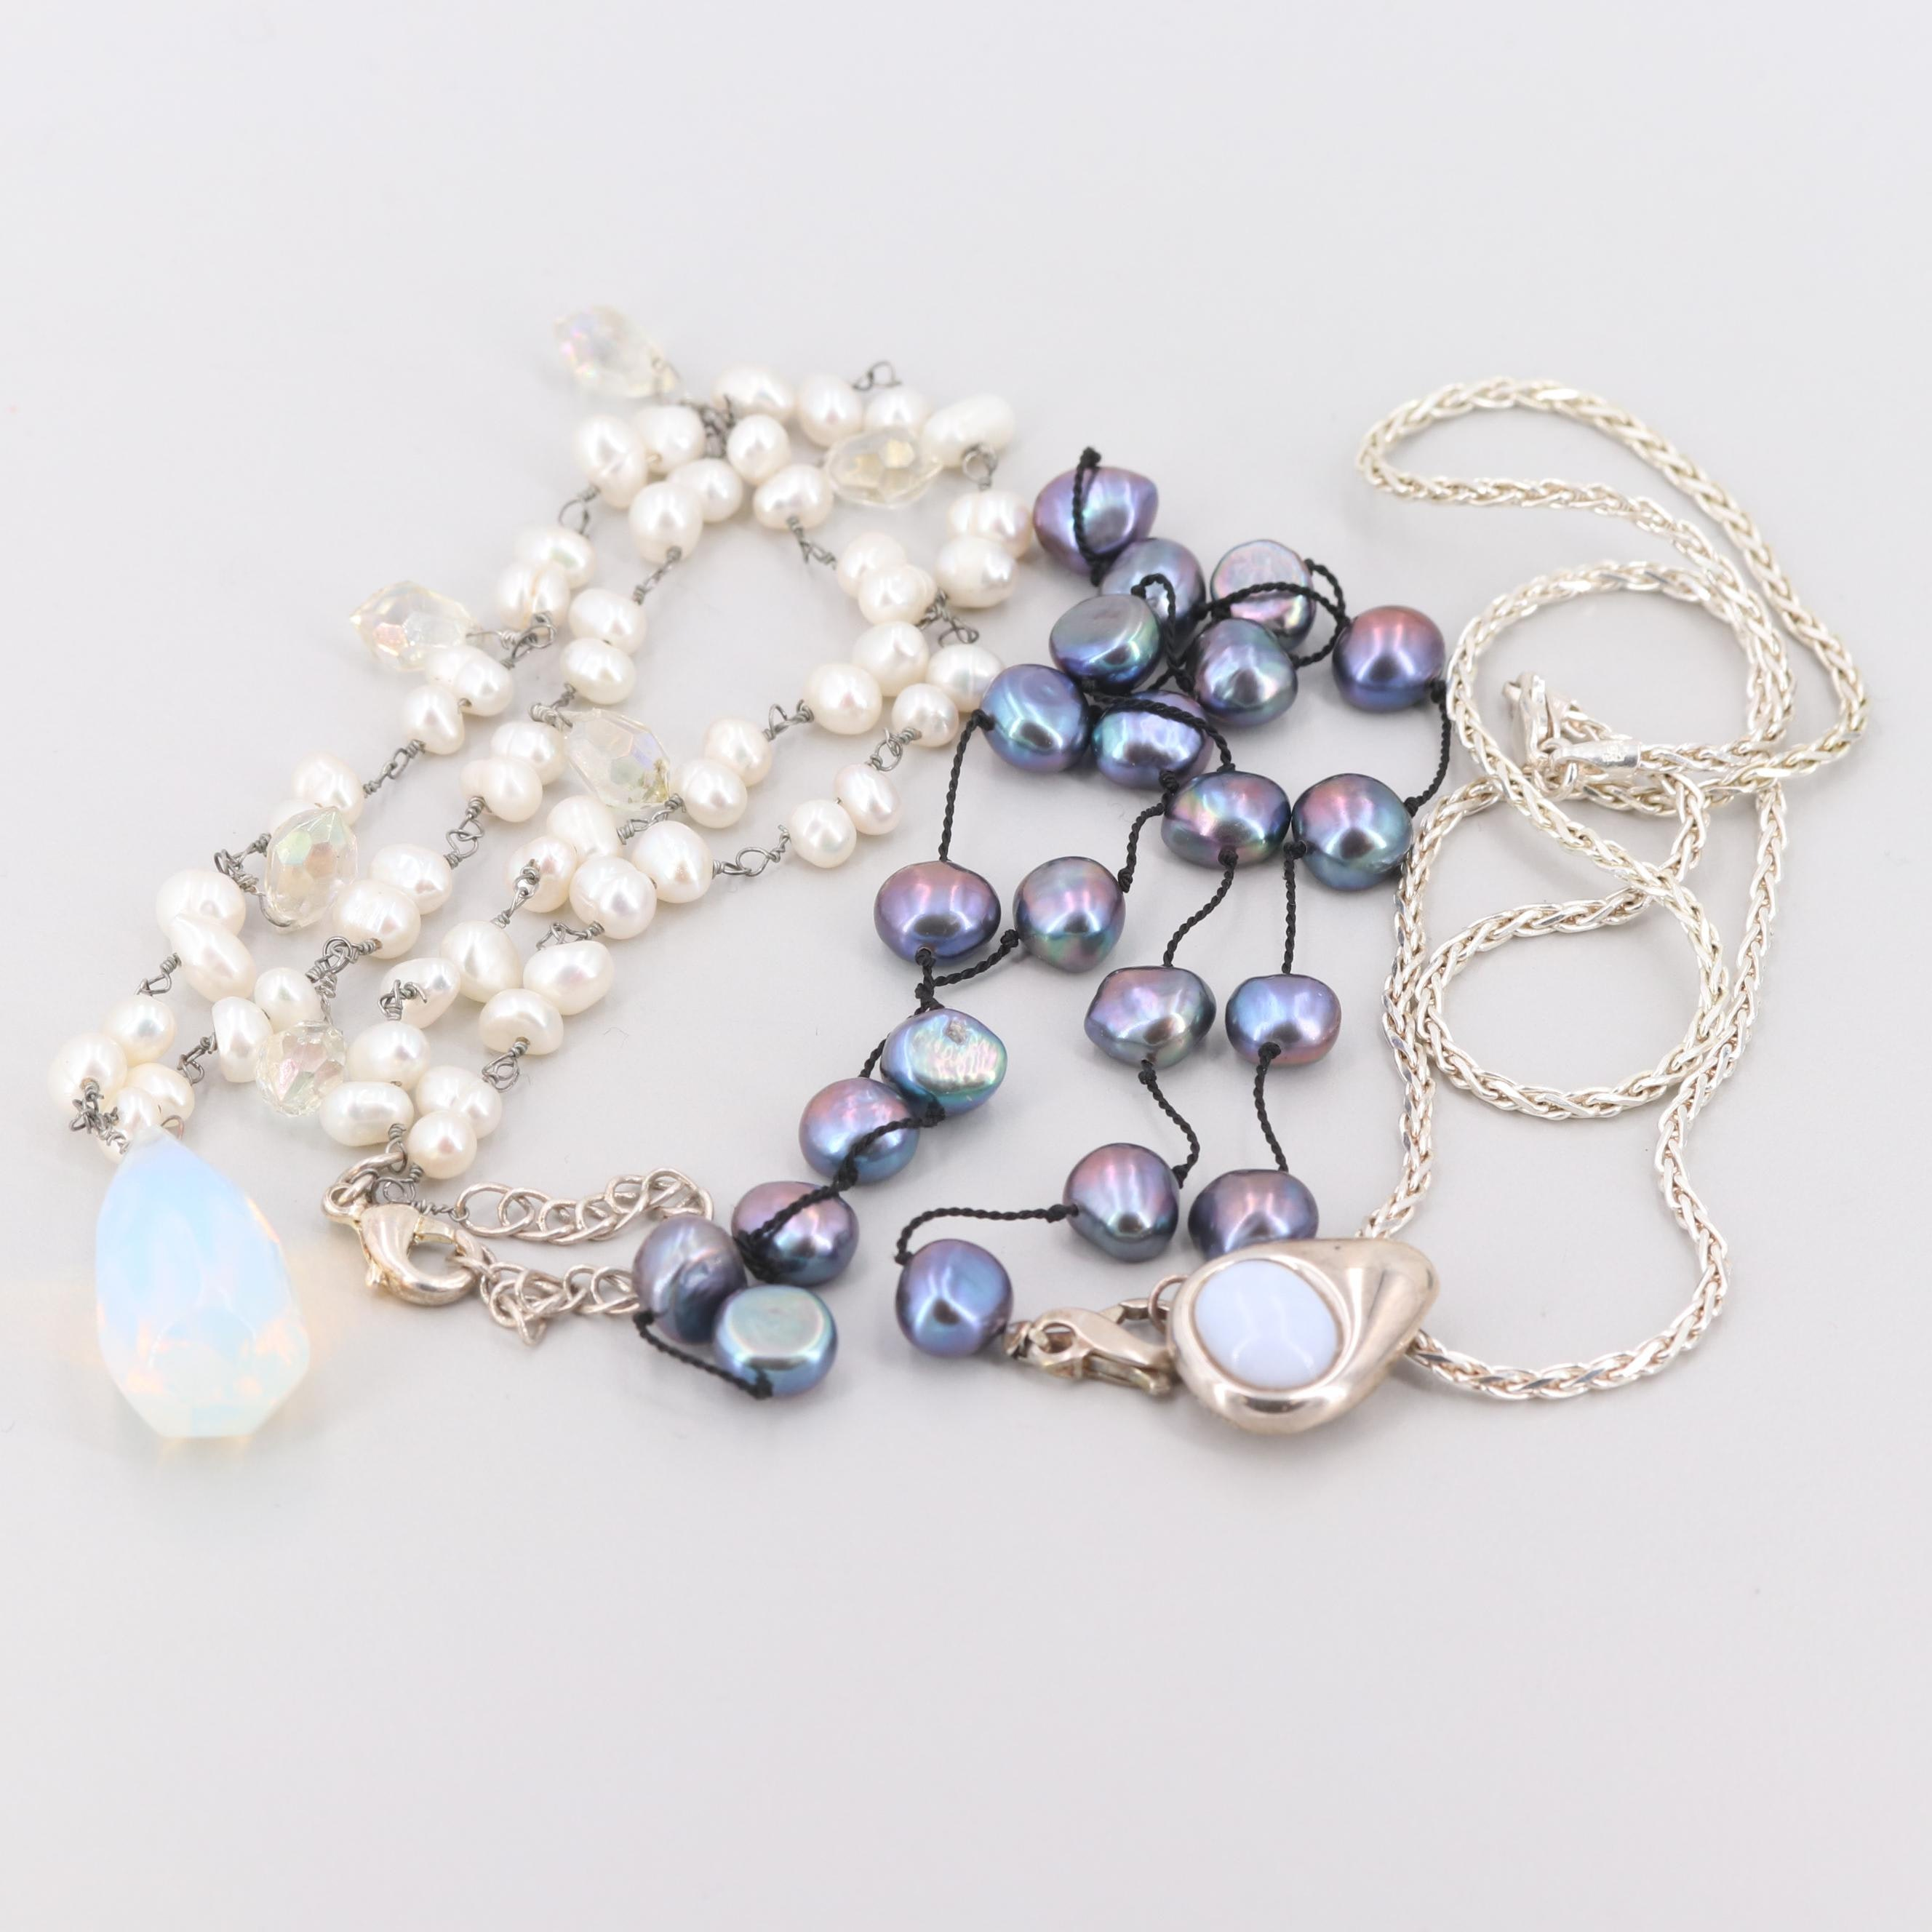 Sterling Silver and Silver Tone Agate, Cultured Pearl, and Glass Necklaces